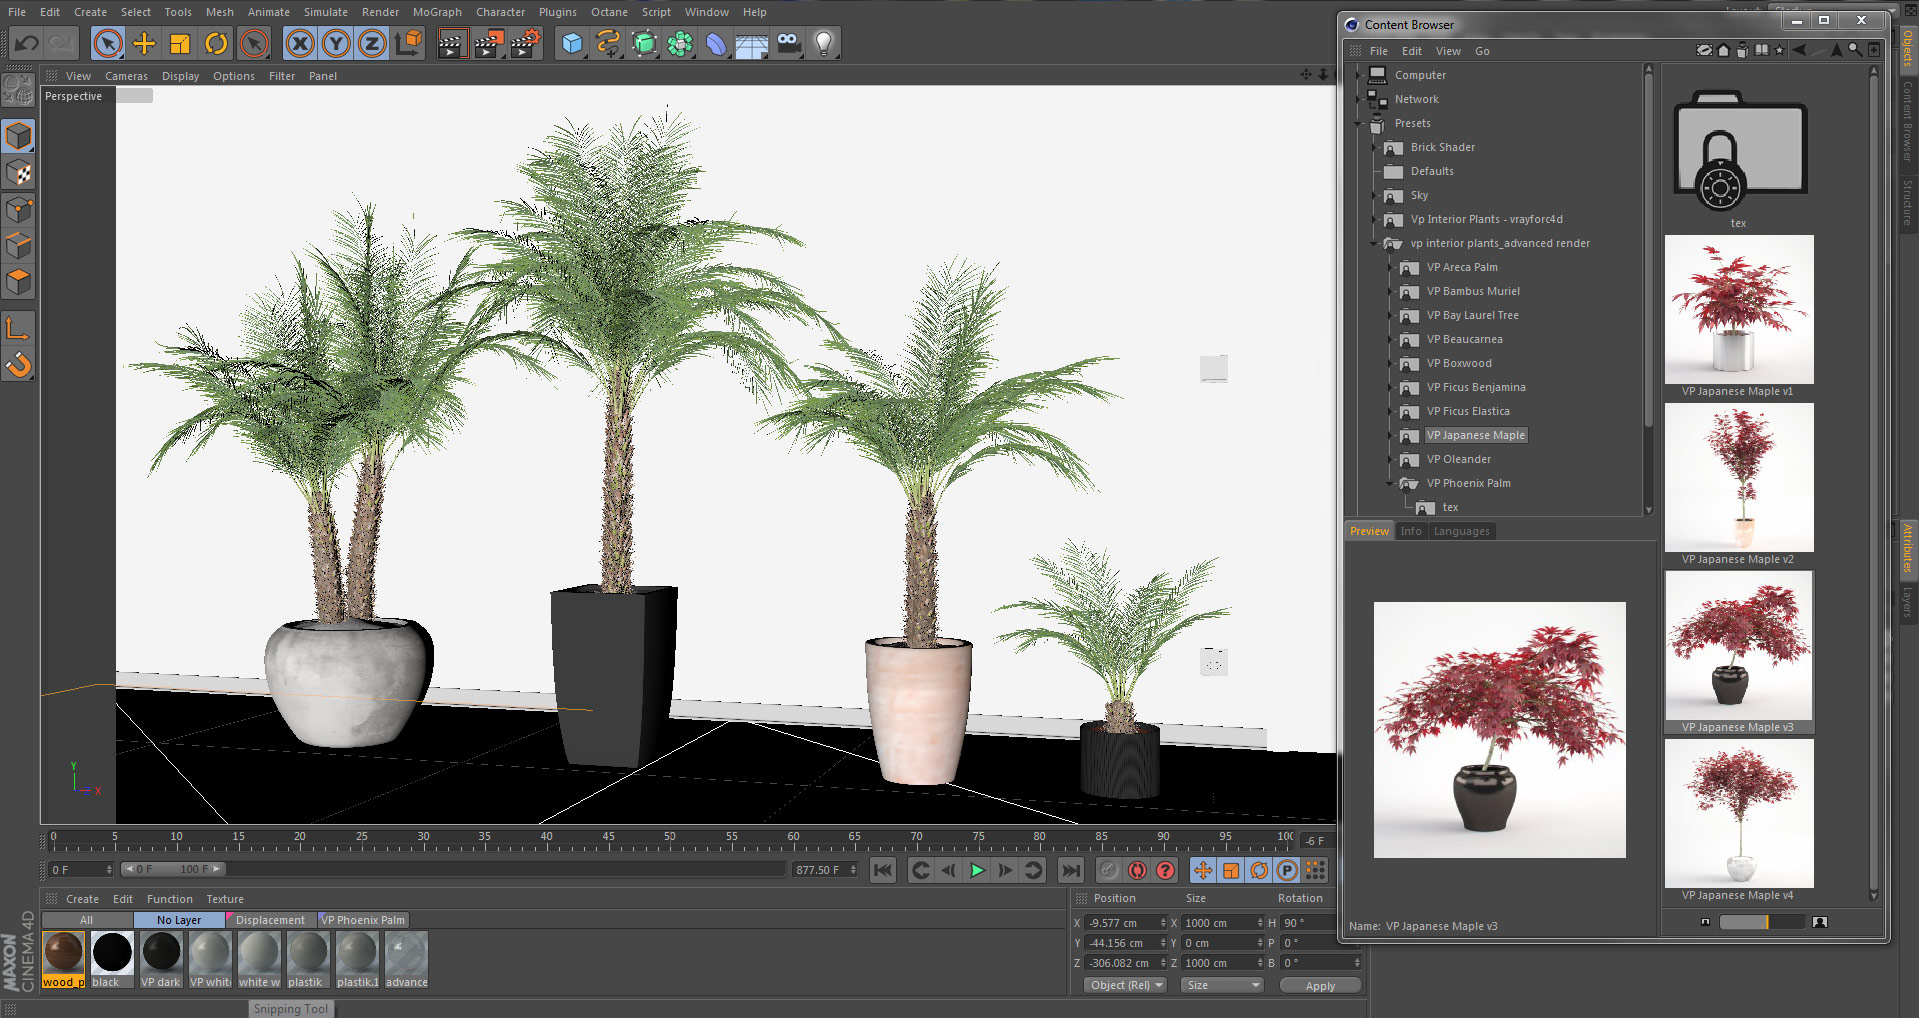 Interior Plants - CINEMA 4D content browser